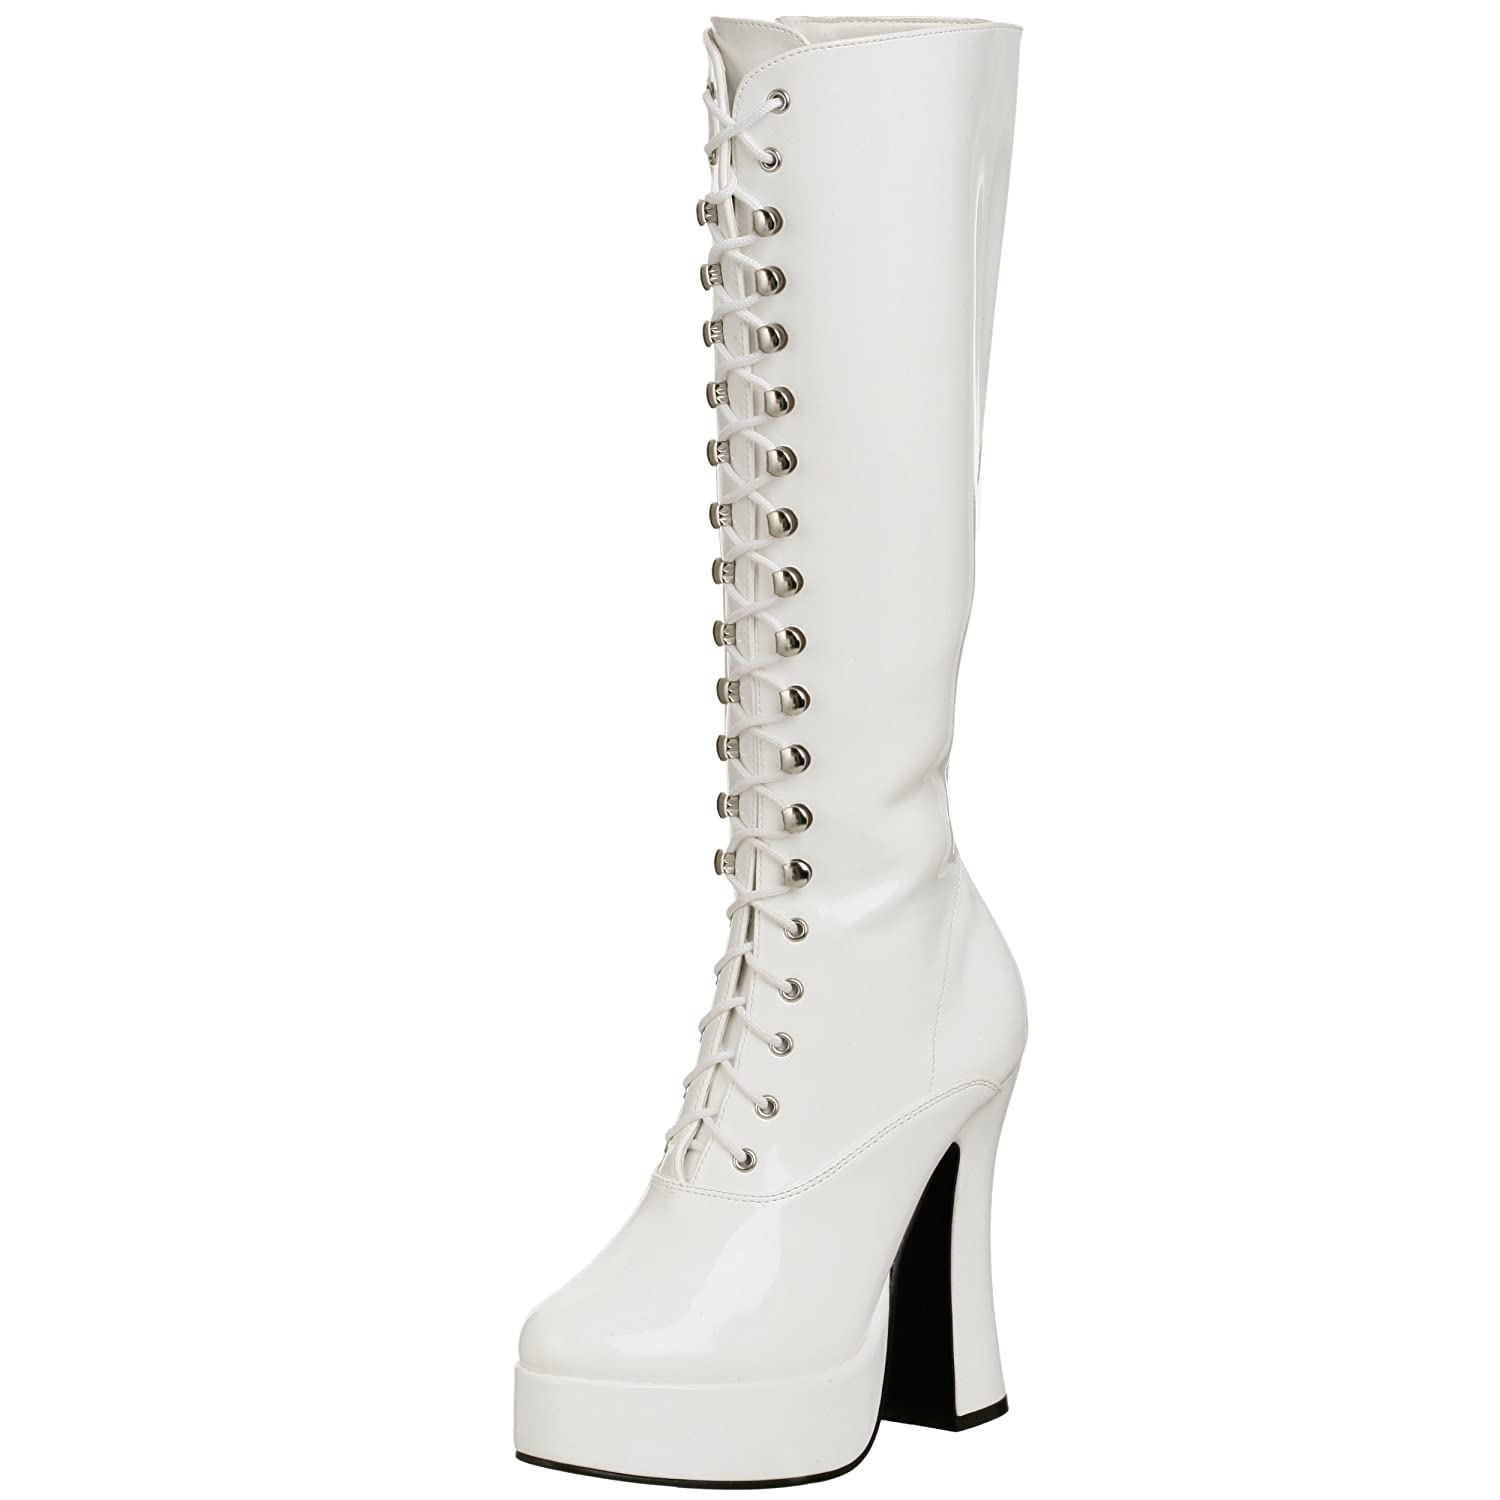 Pleaser Women's Electra-2020 Boot B00125SIA6 9 B(M) US|White Patent